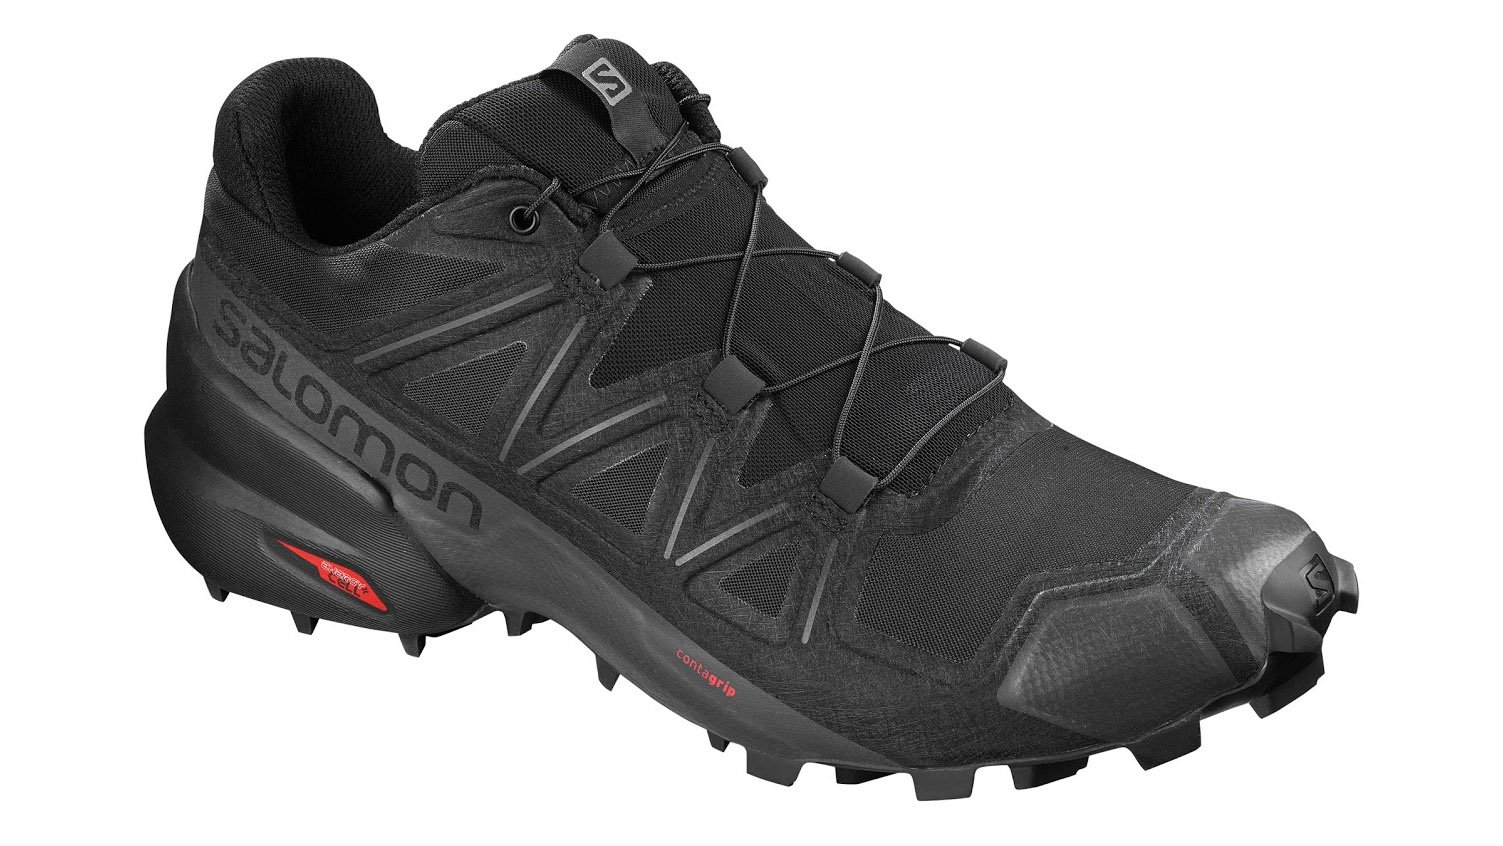 a333fefc2 Runners faced with boggy conditions have long valued Salomon's Speedcross  line as an excellent ally against the mud – and the latest version offers  even ...